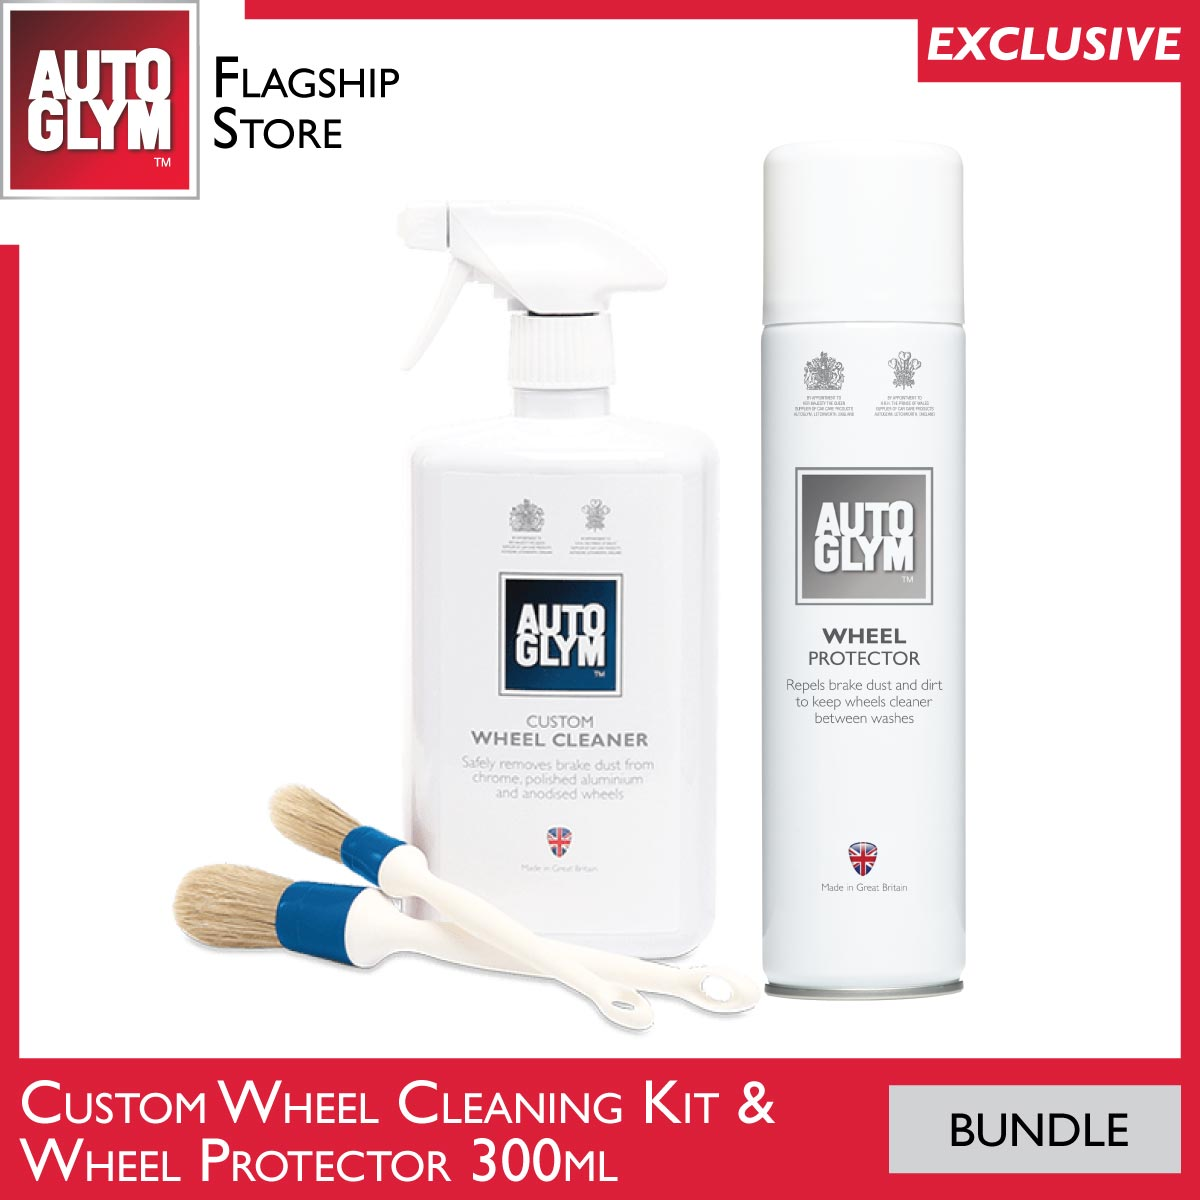 [bundle] Autoglym Custom Wheel Cleaner Complete Kit + Wheel Protector  Clean And Protect Your Car Wheels.